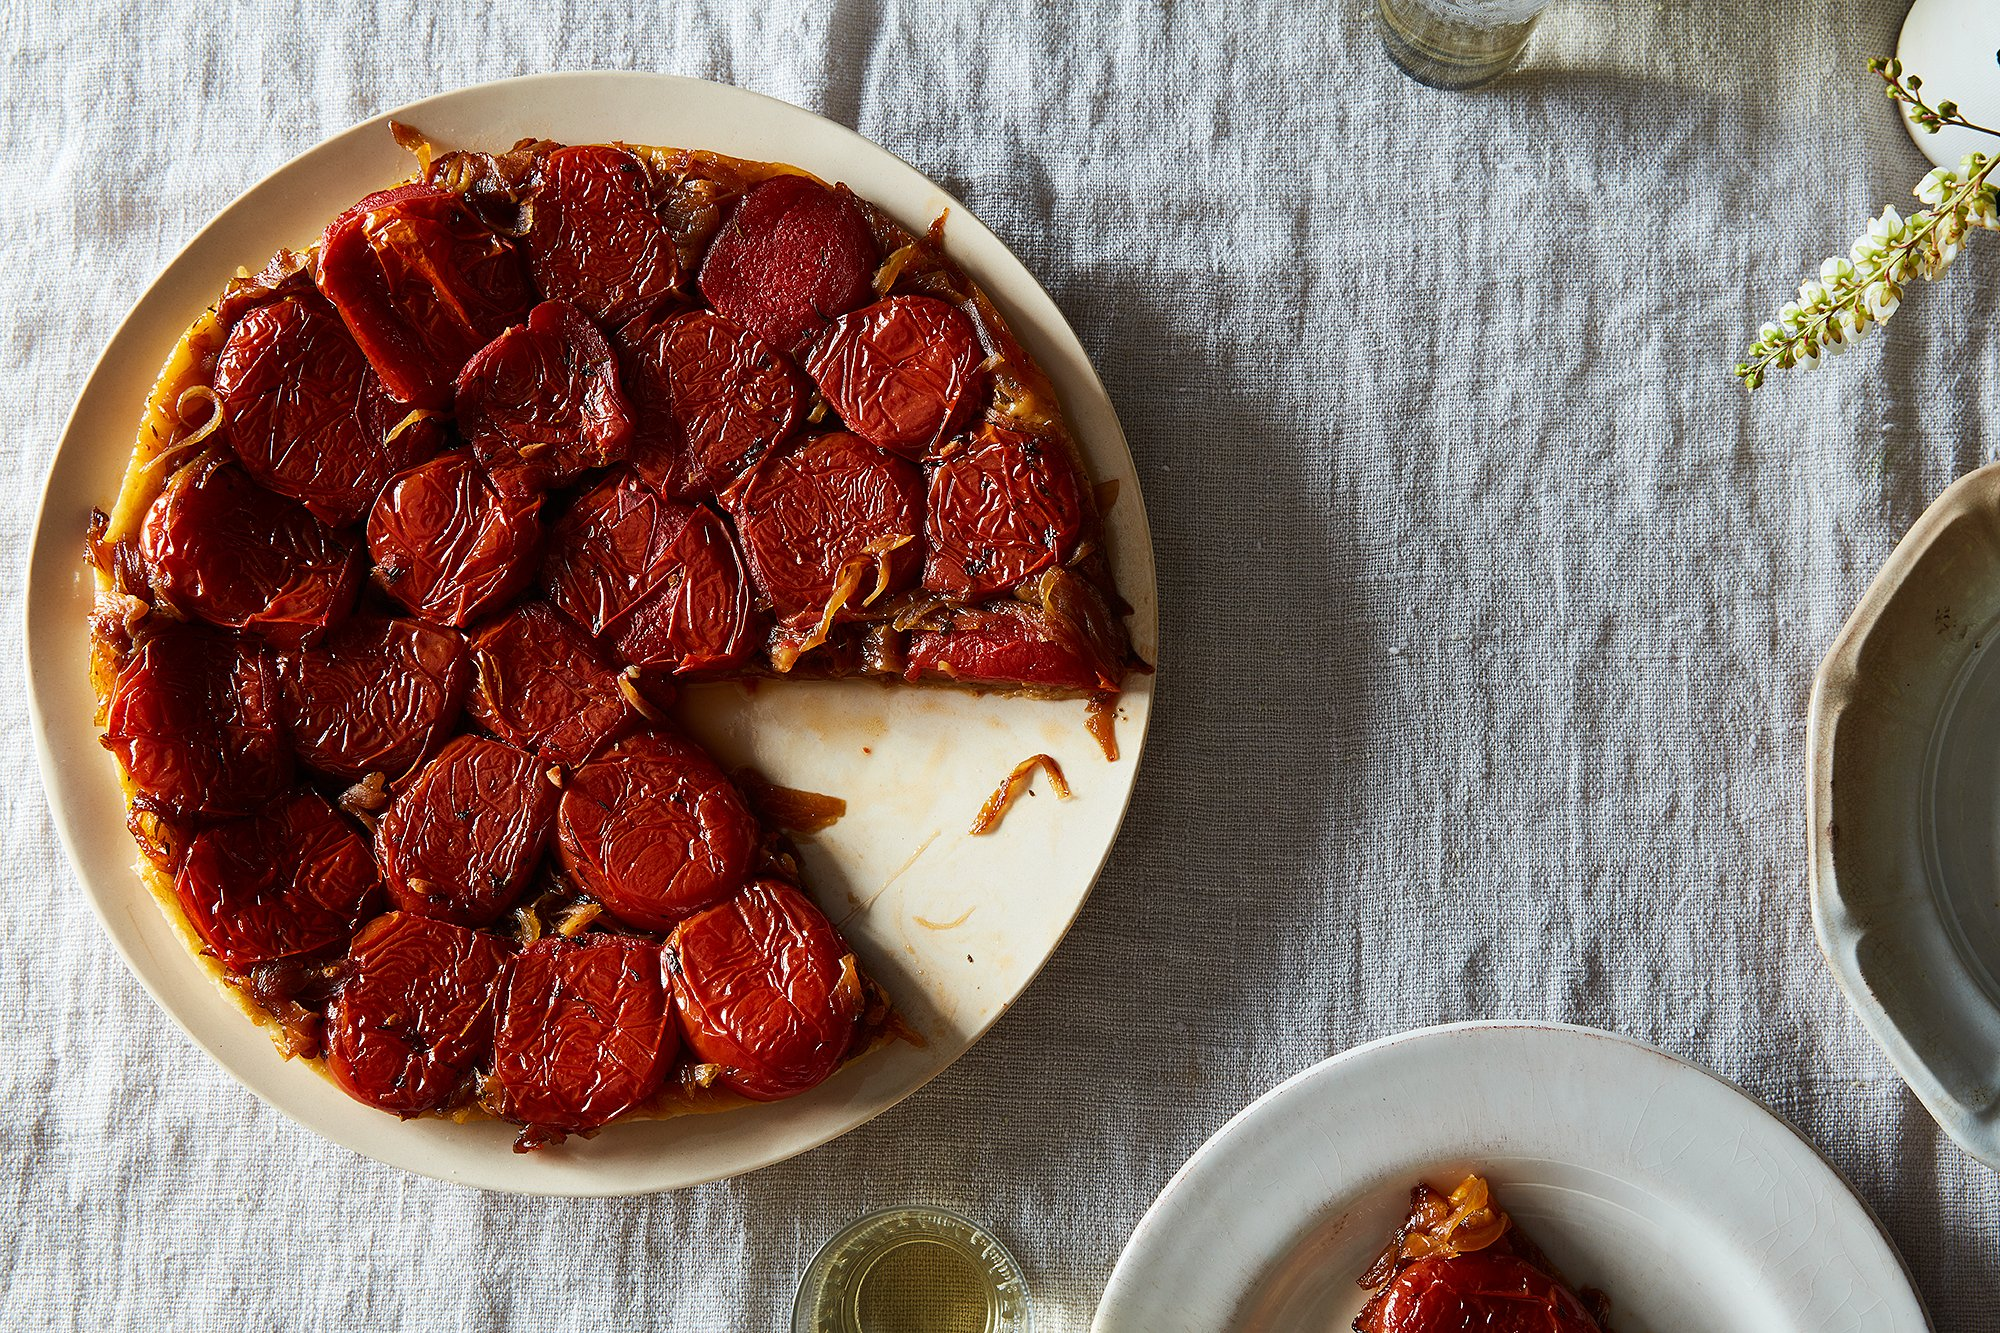 The 10 Best Things to Do with Summer Tomatoes